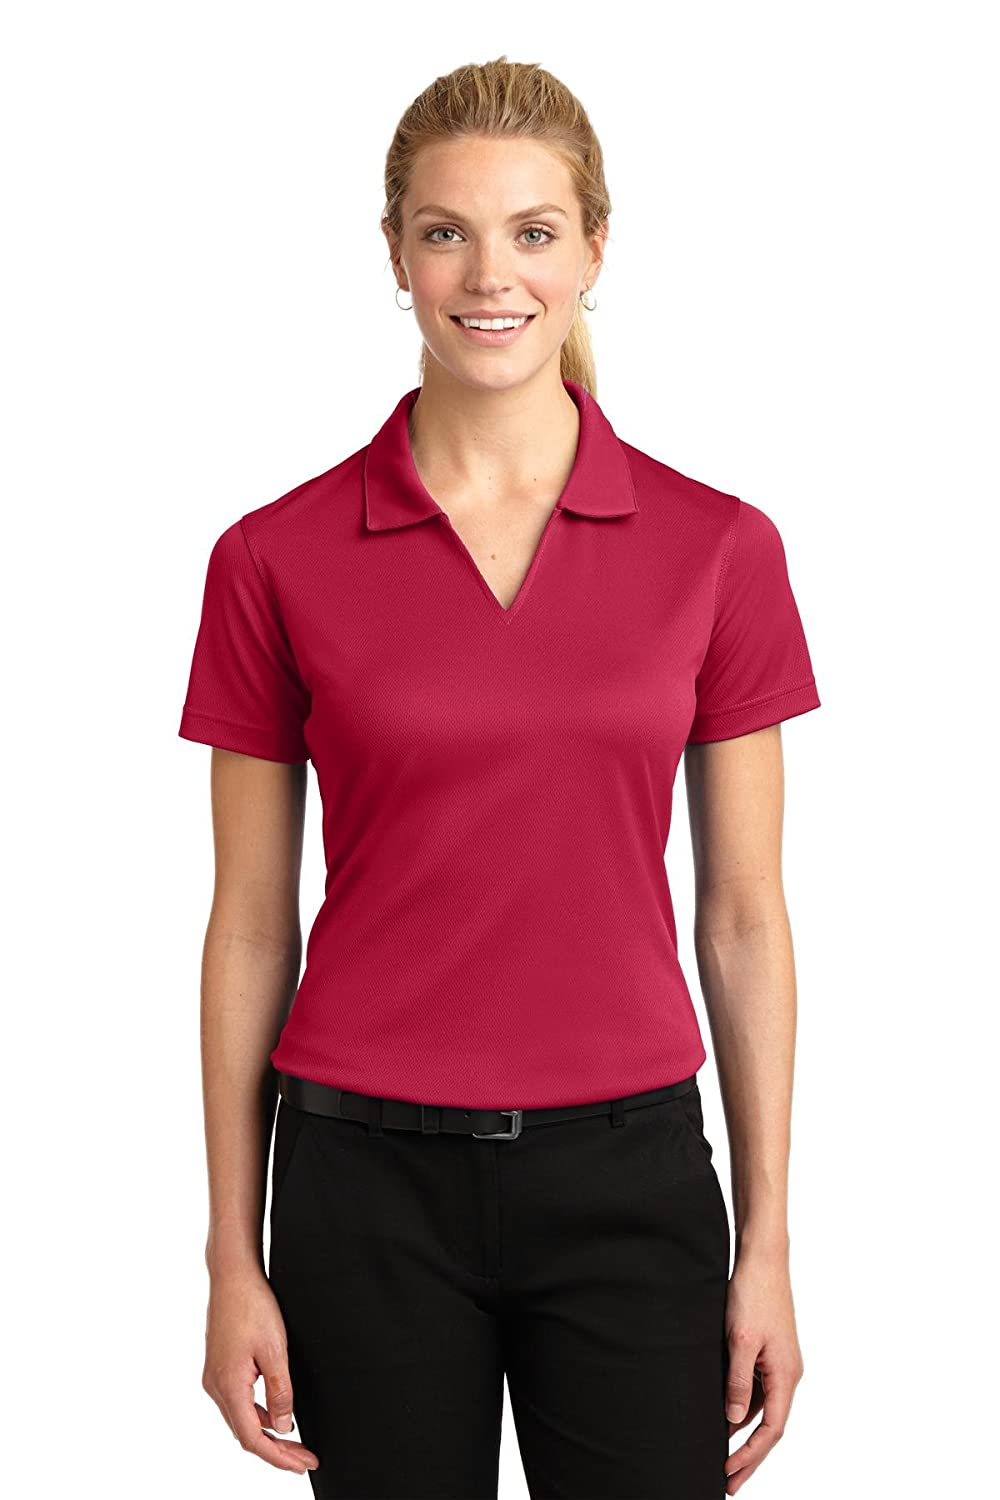 Sport-Tek Women's Dri Mesh V Neck Polo Shirt